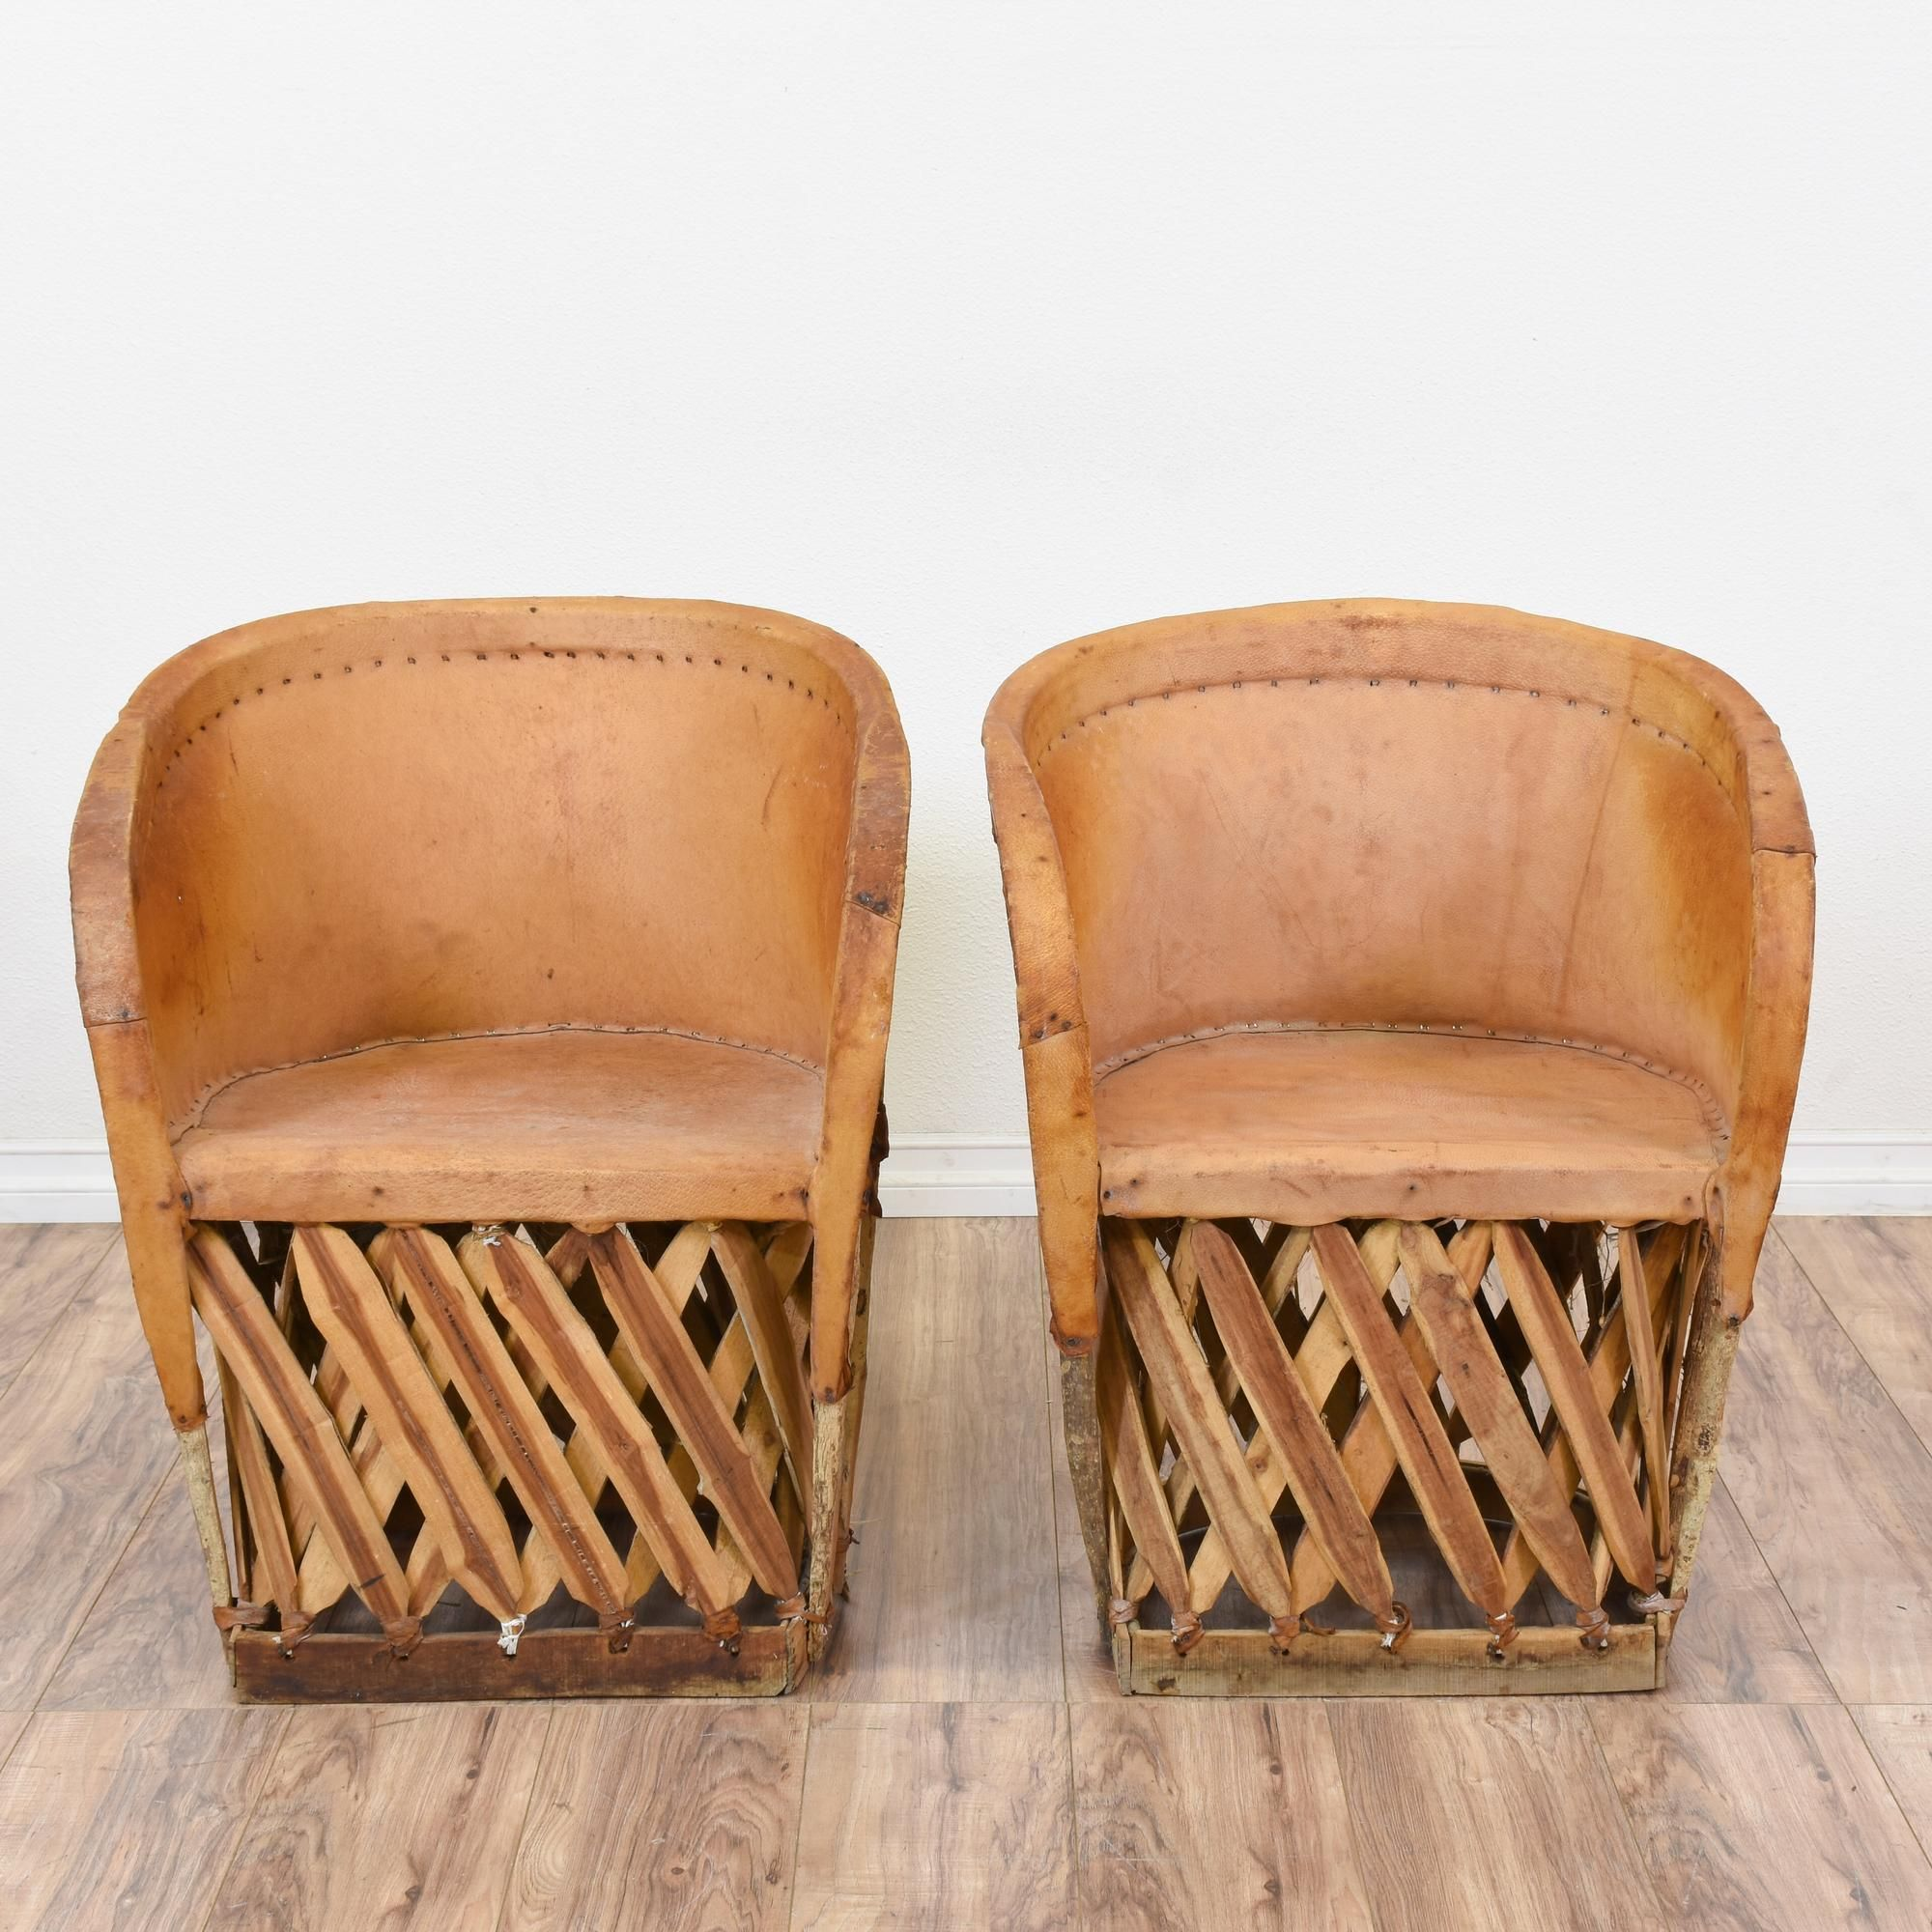 This pair of Mexican style equipale chairs are featured in a solid